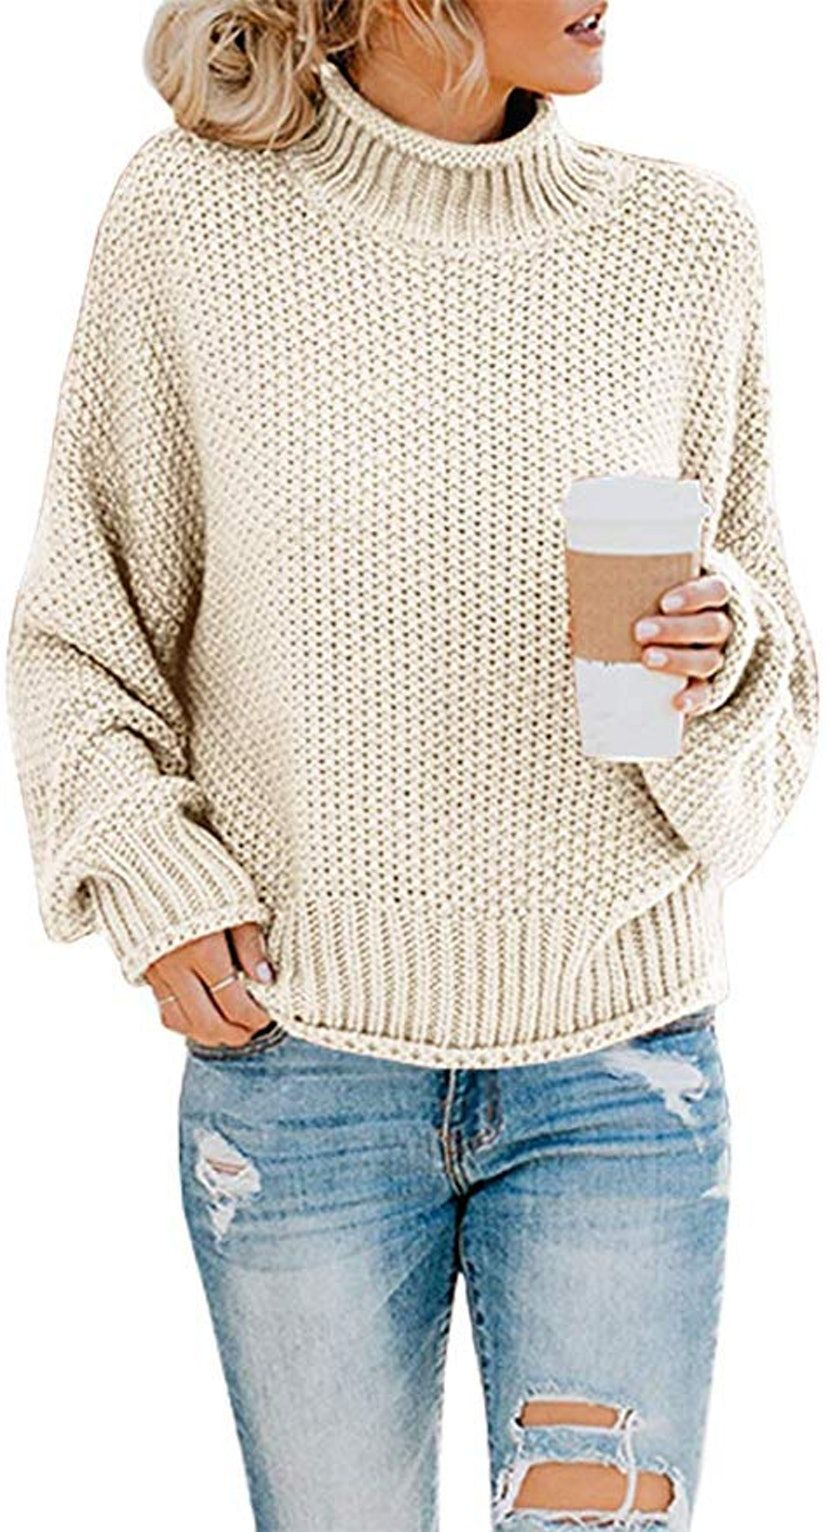 Women's Sweaters Winter Sweaters Cardigans For Women Basic Knitting Patterns Ladies Jumpers Long Cardigan Muslimah